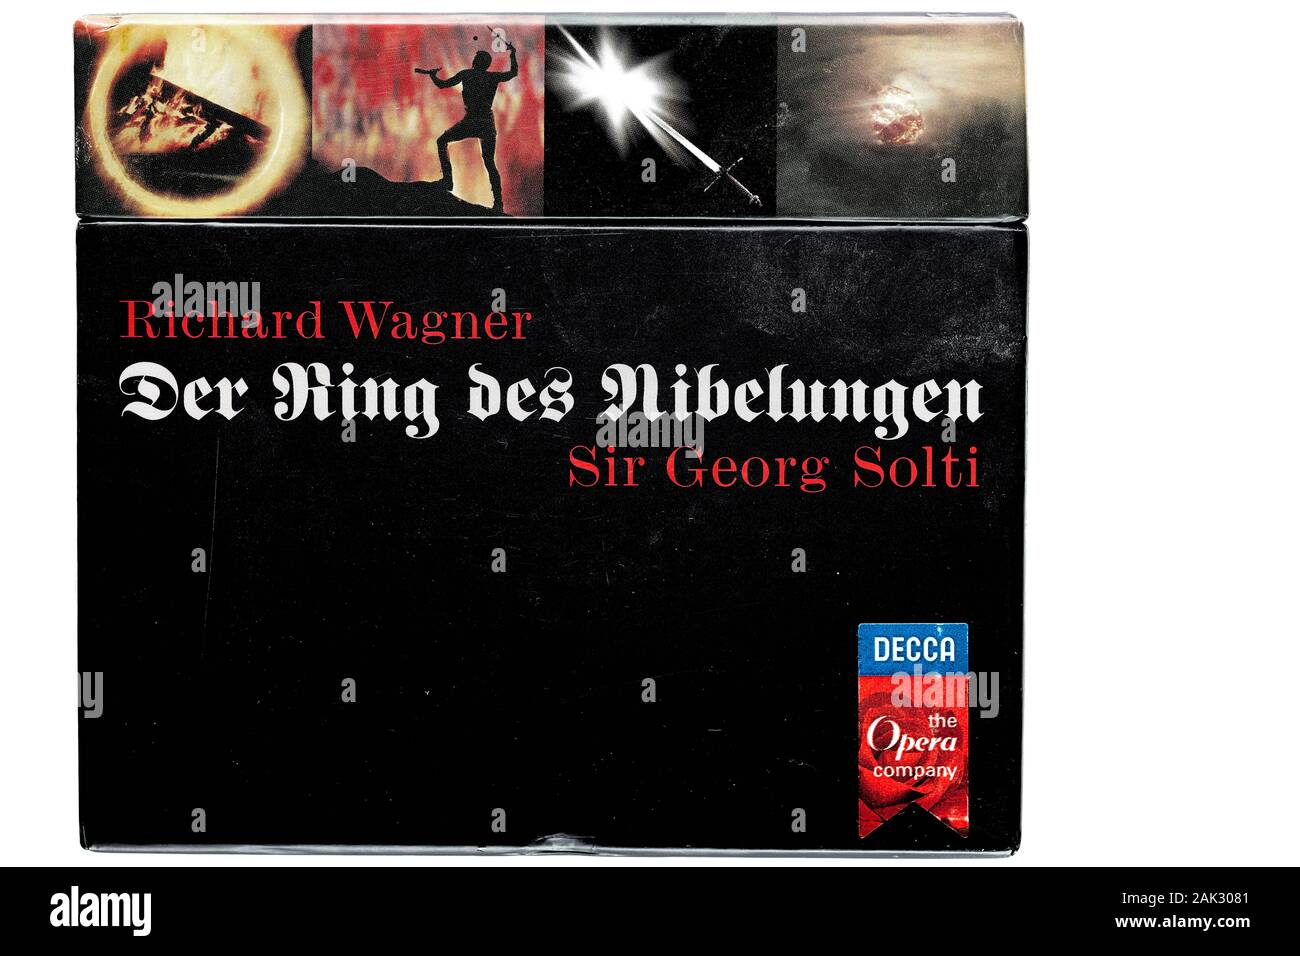 Cover of the historic music recording on cd of the composer Wagner's Ring cycle performed by the Vienna Philharmonic orchestra under conductor Solti. Stock Photo